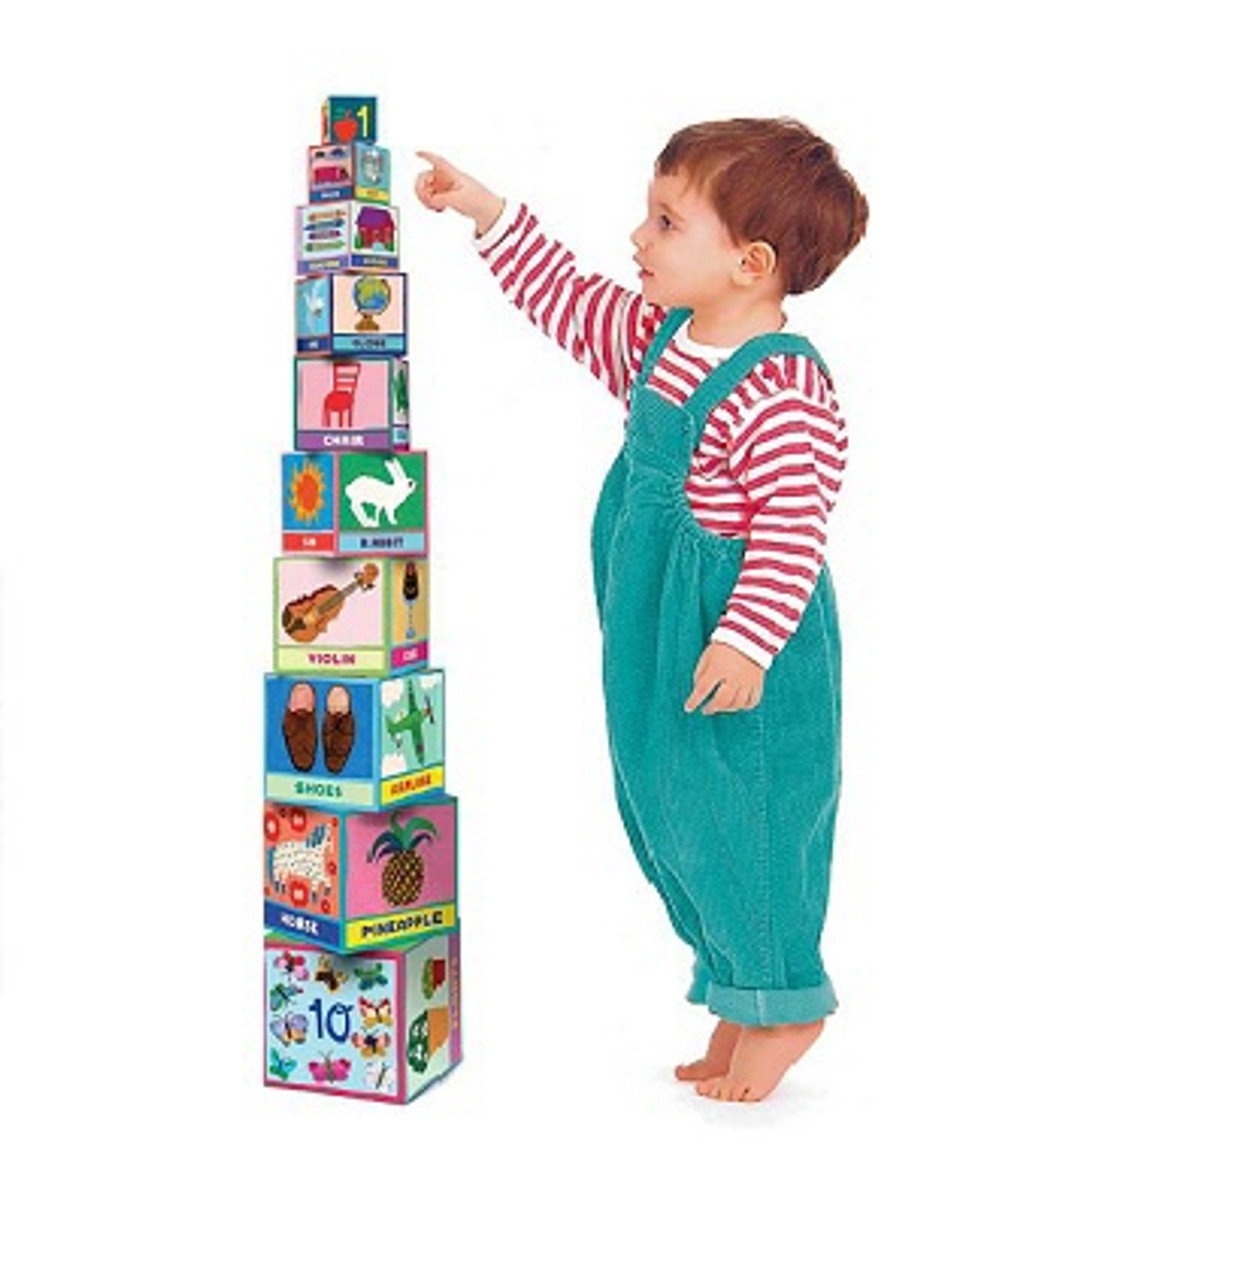 FIRST WORDS TOT TOWER